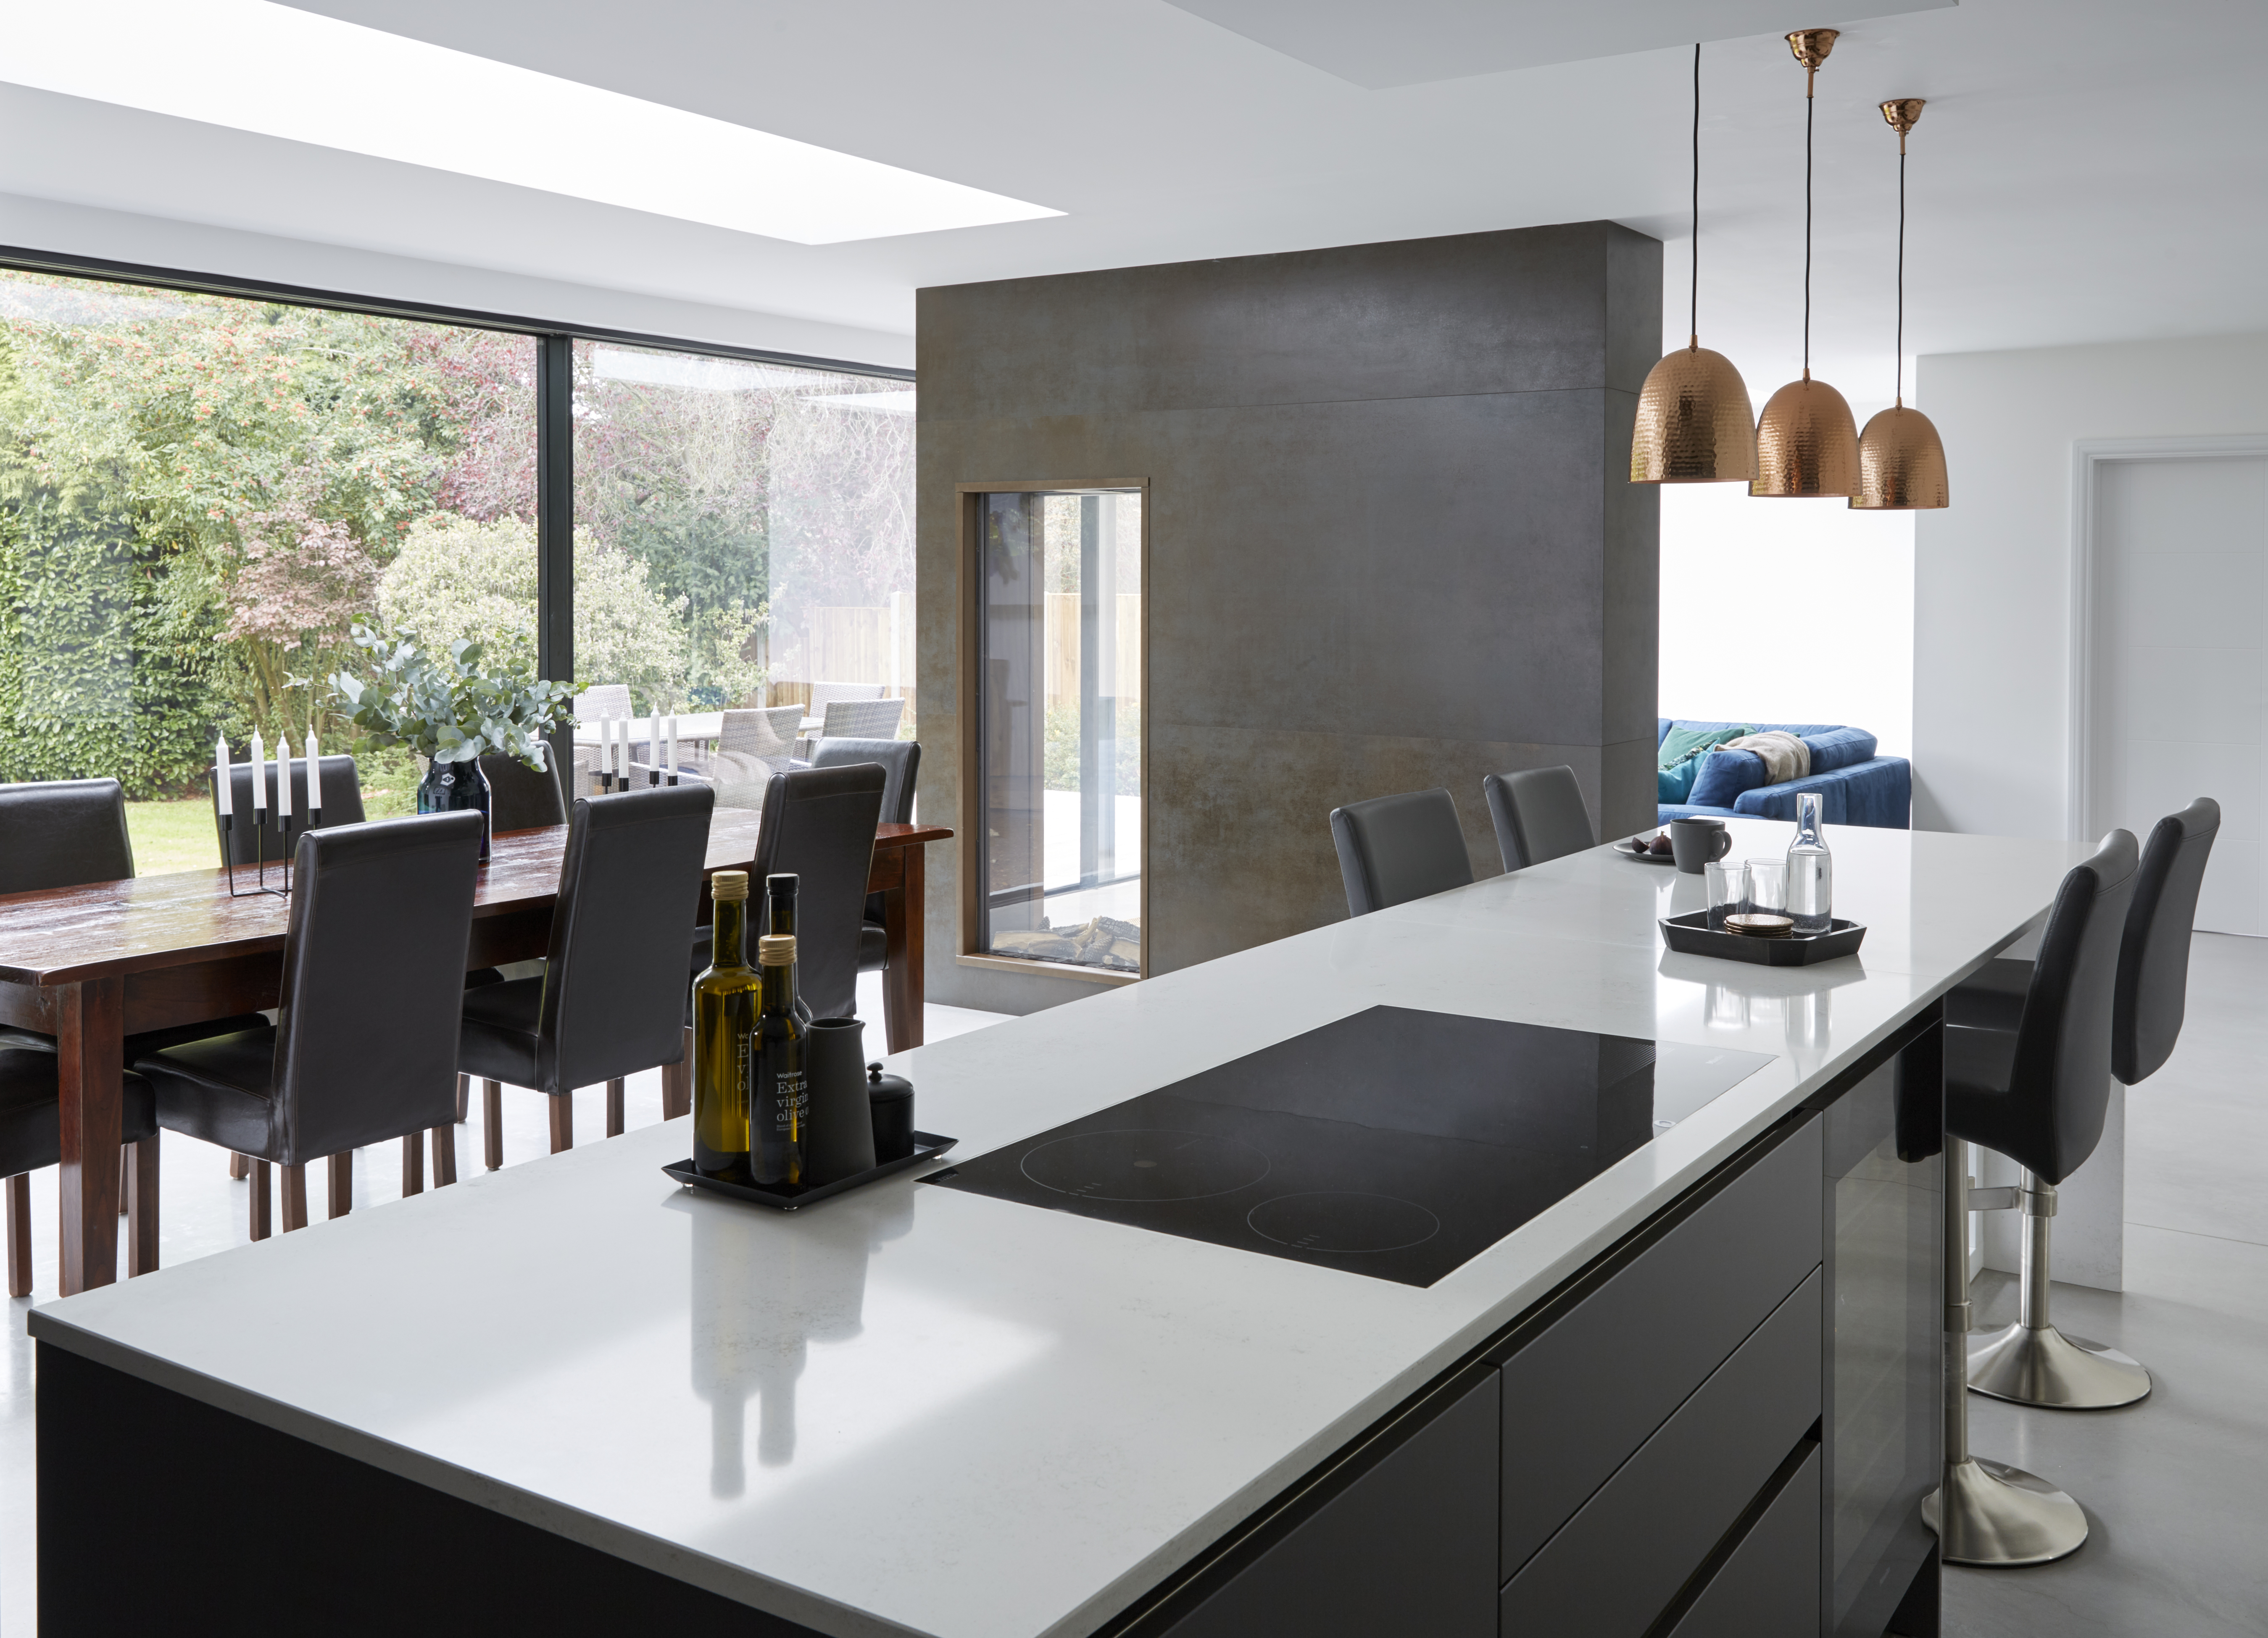 Hub Kitchens Zoning Para 5 (Hub Kitchens Epsom Bespoke kitchen